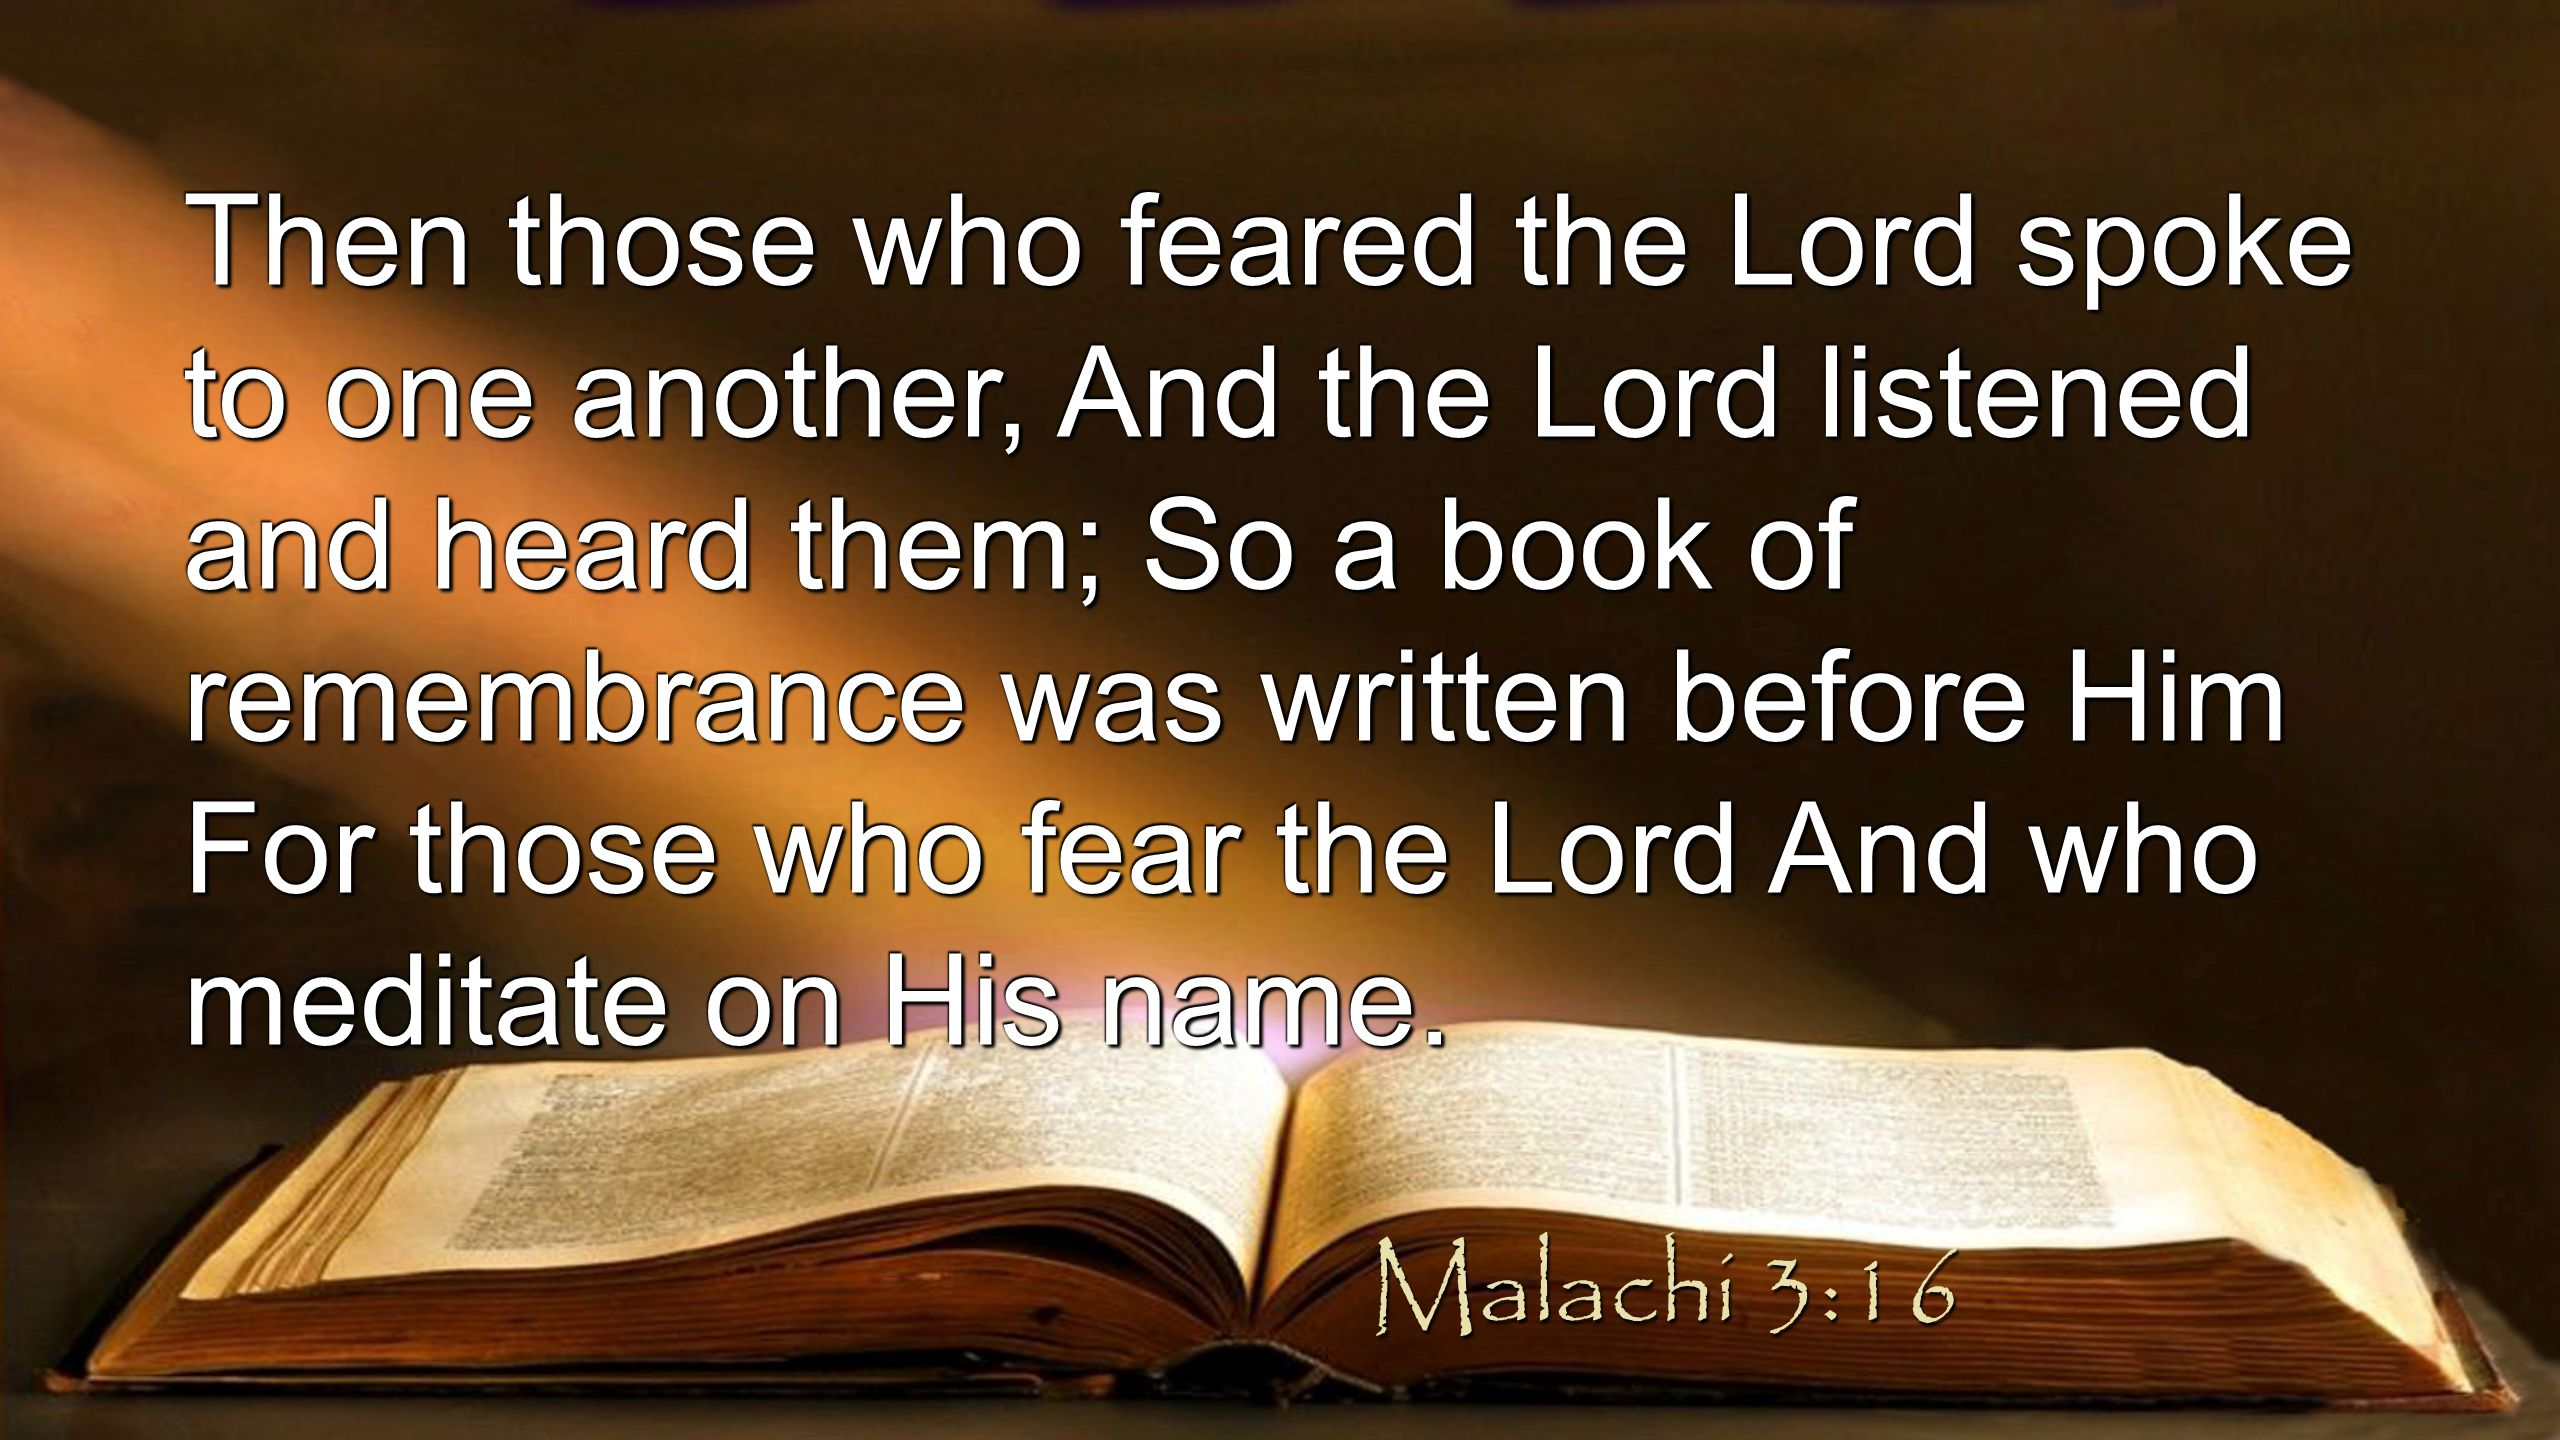 Then those who feared the Lord spoke to one another, And the Lord listened and heard them; So a book of remembrance was written before Him For those who fear the Lord And who meditate on His name.